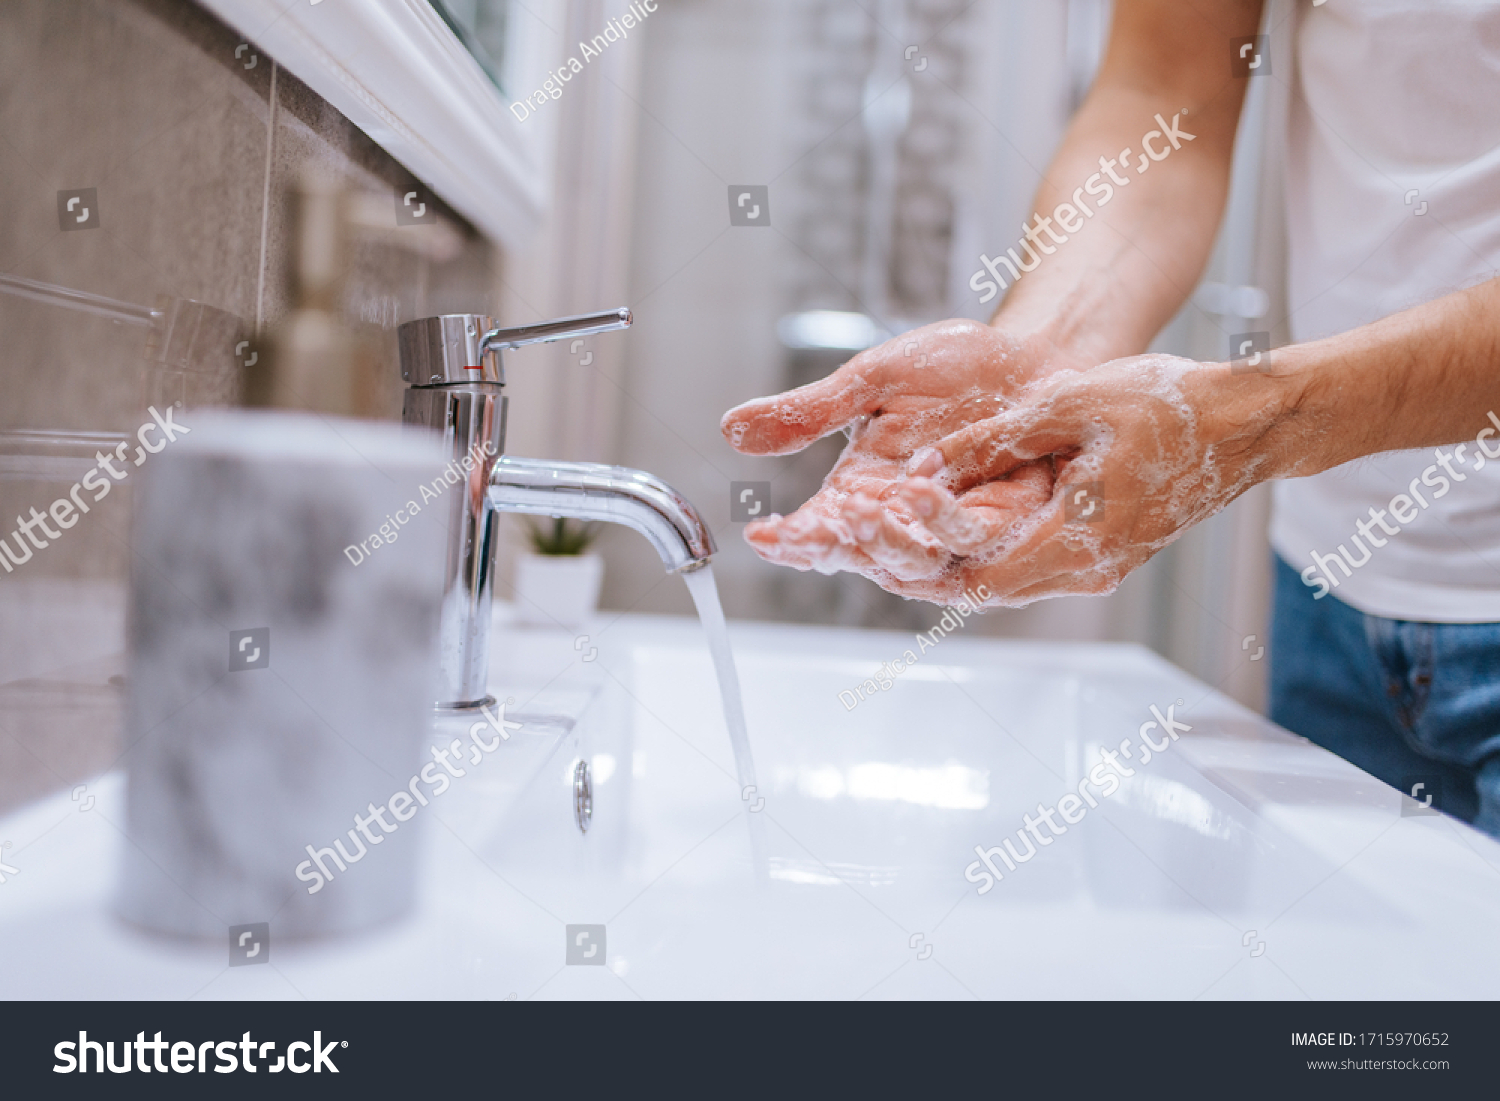 Close up of caucasian man washes his hands in the bathroom. COVID - 19 prevention #1715970652